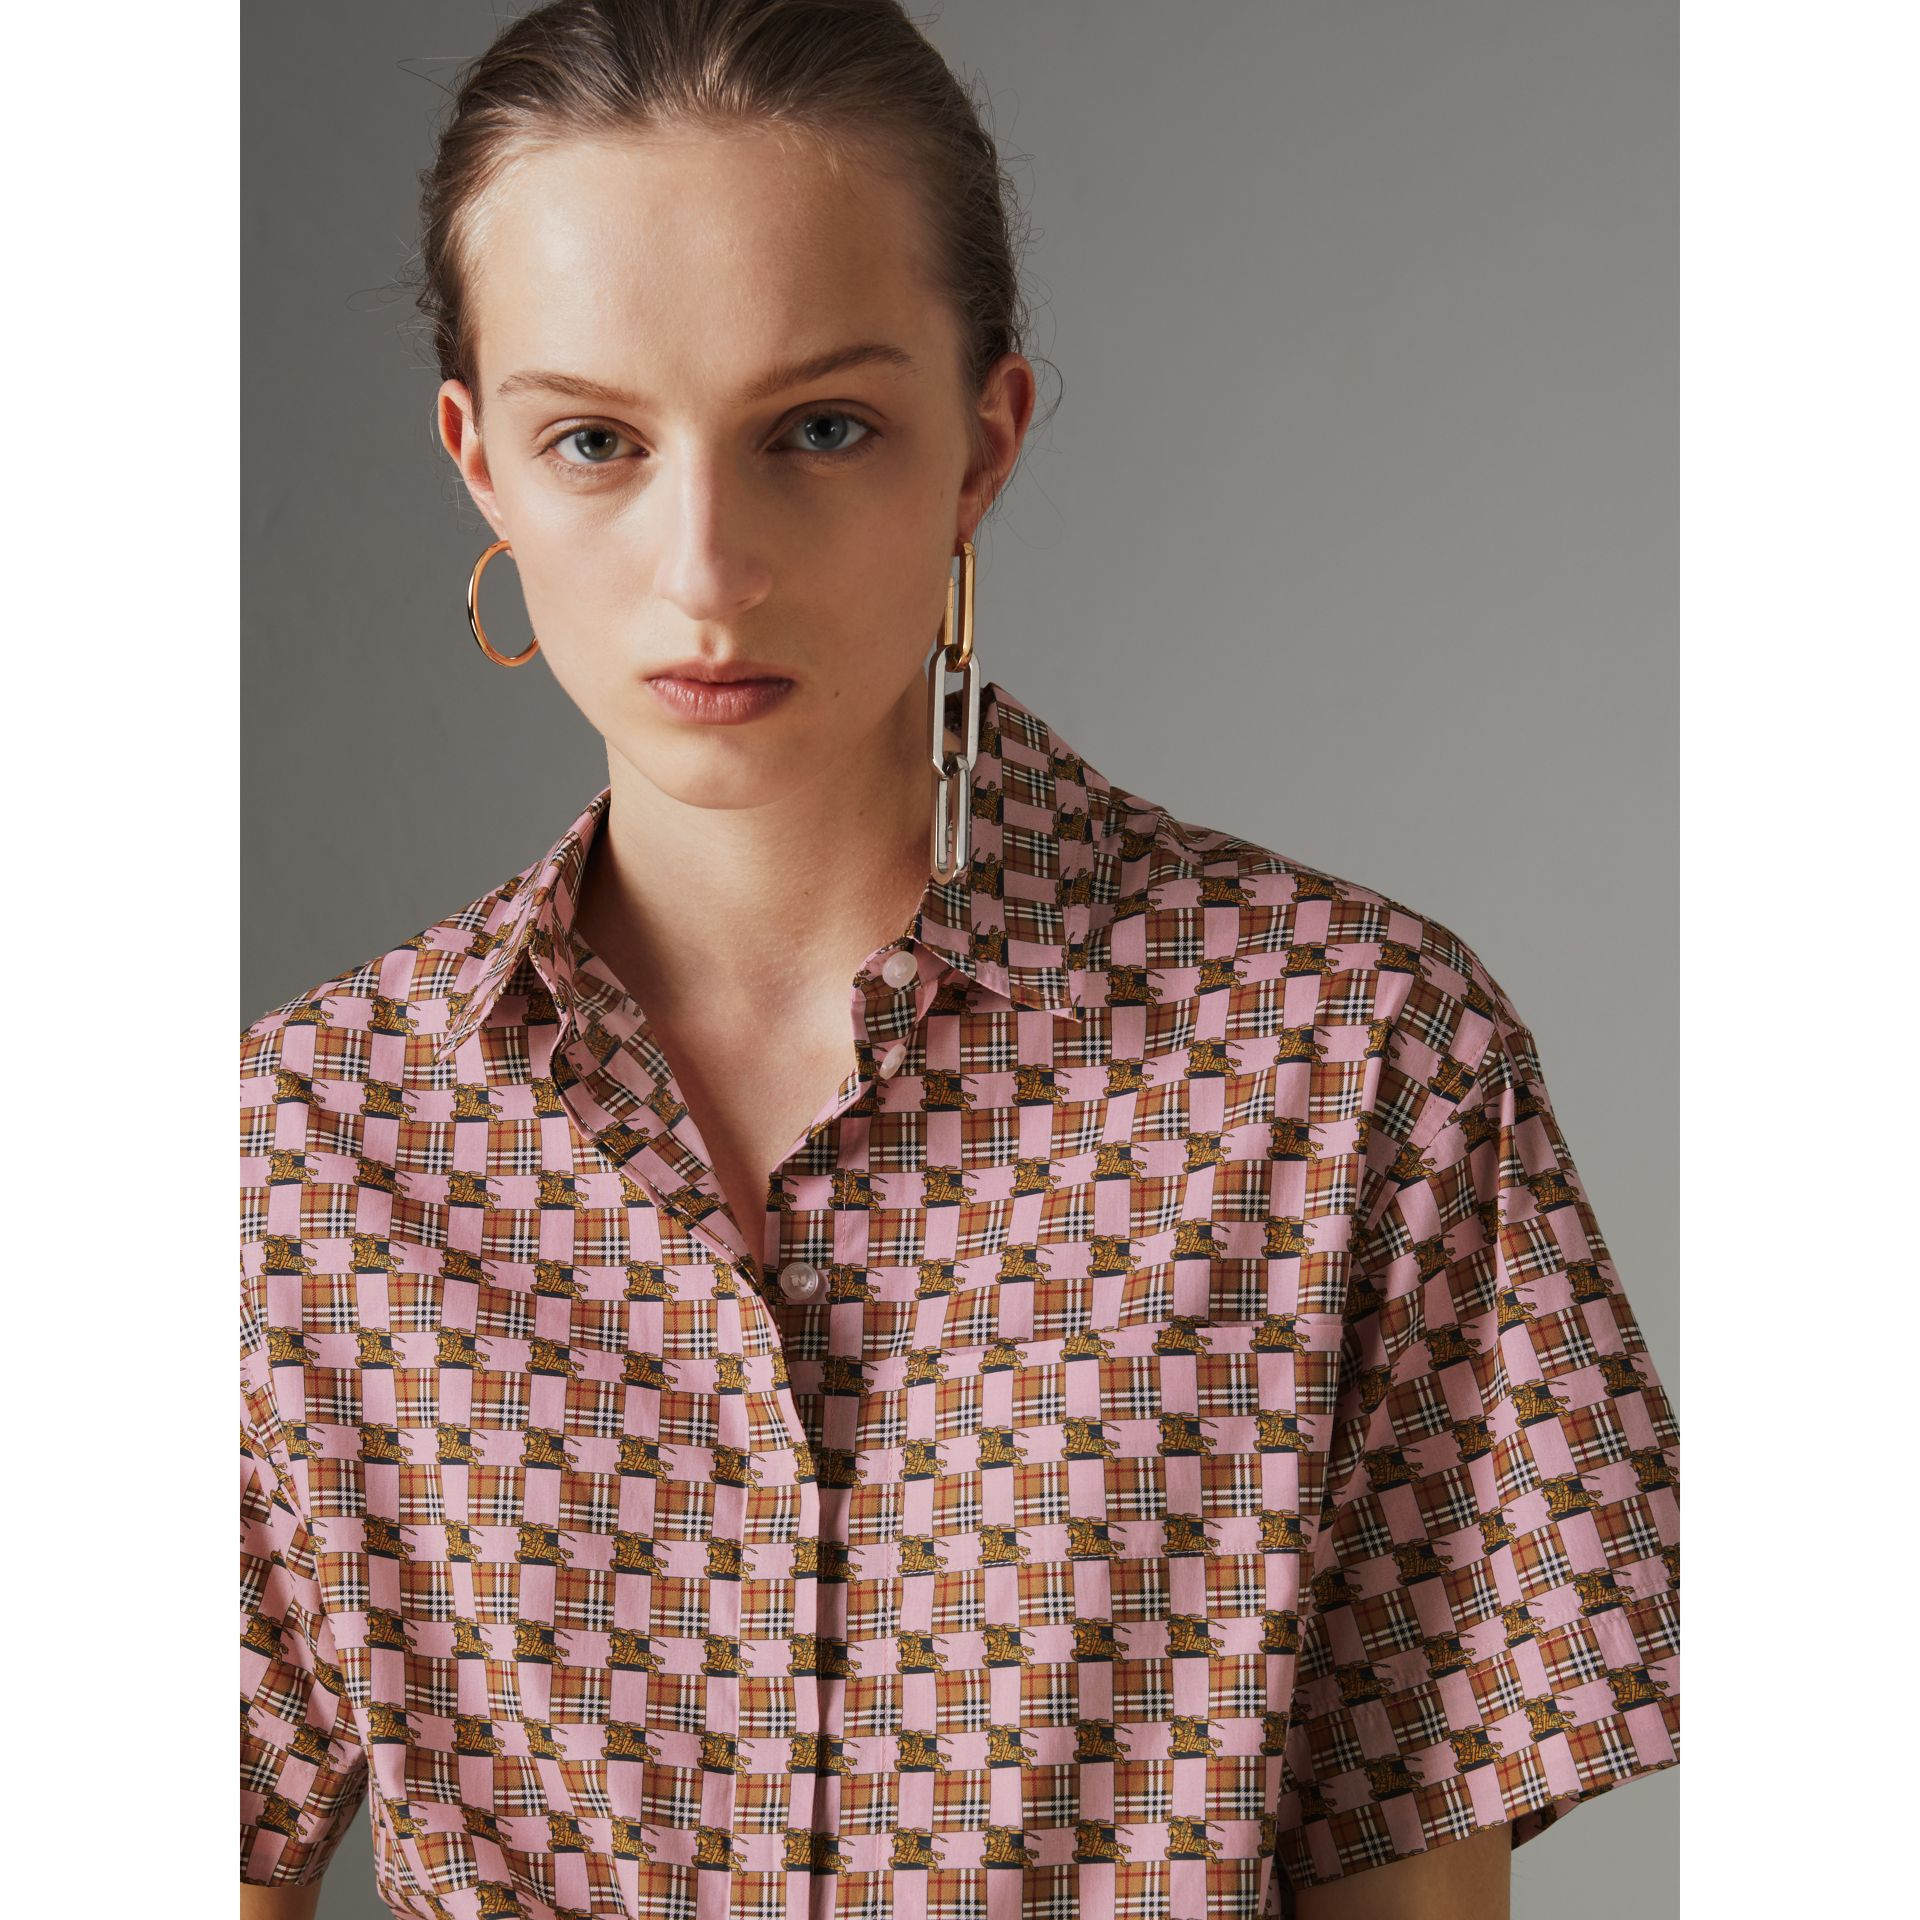 Short-sleeve Tiled Archive Print Shirt in Pink - Women | Burberry - gallery image 1